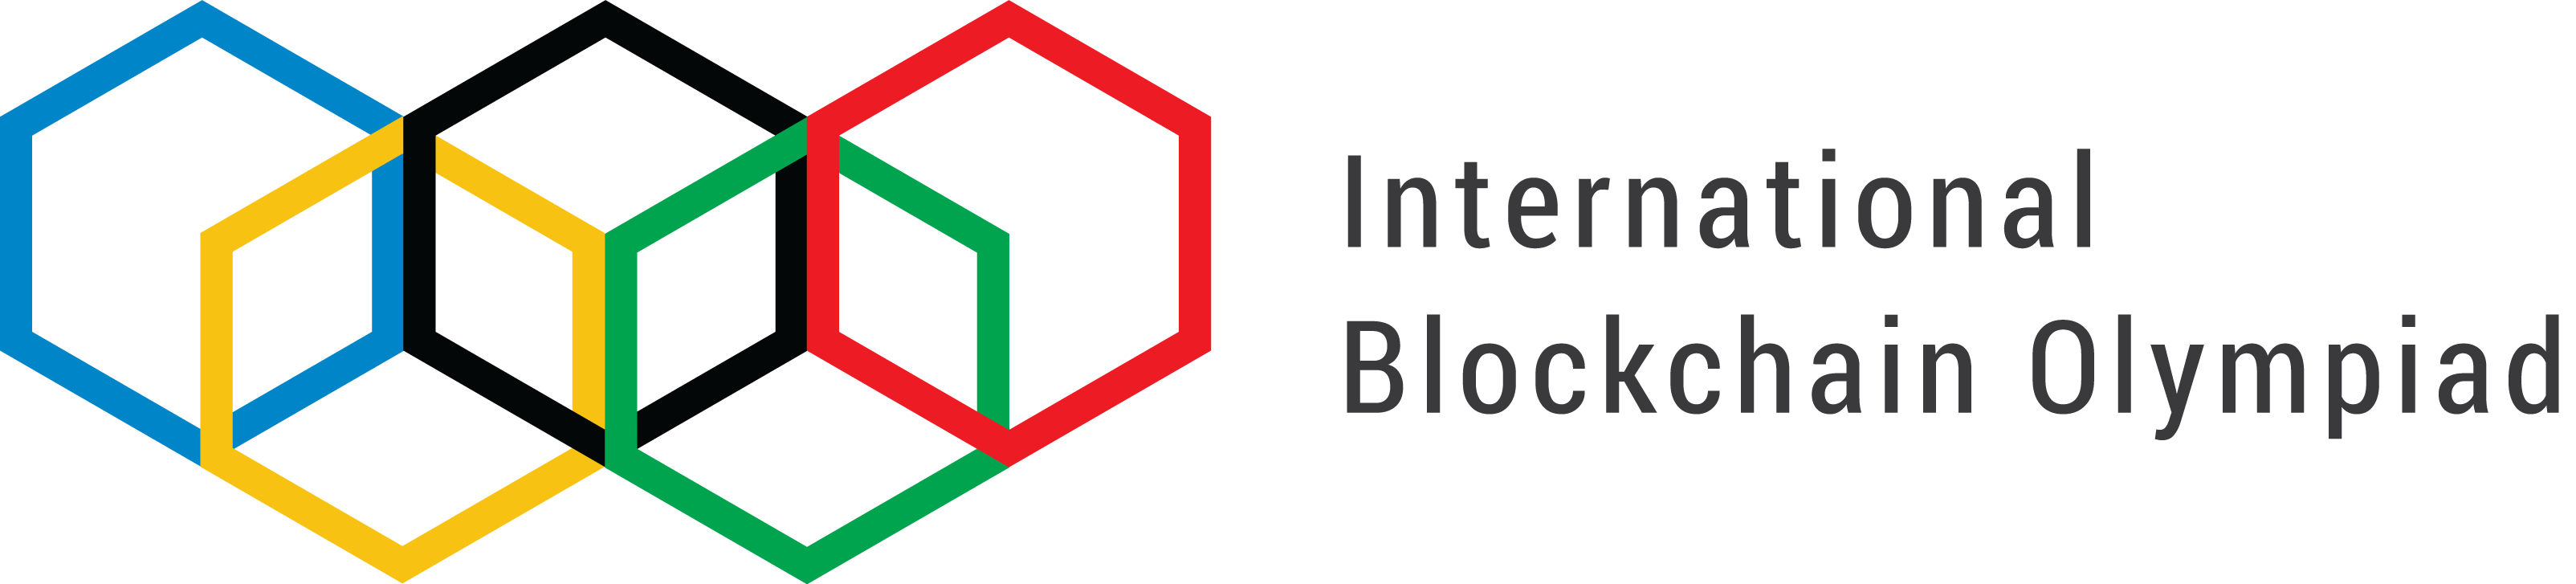 IBCOL: International Blockchain Olympiad